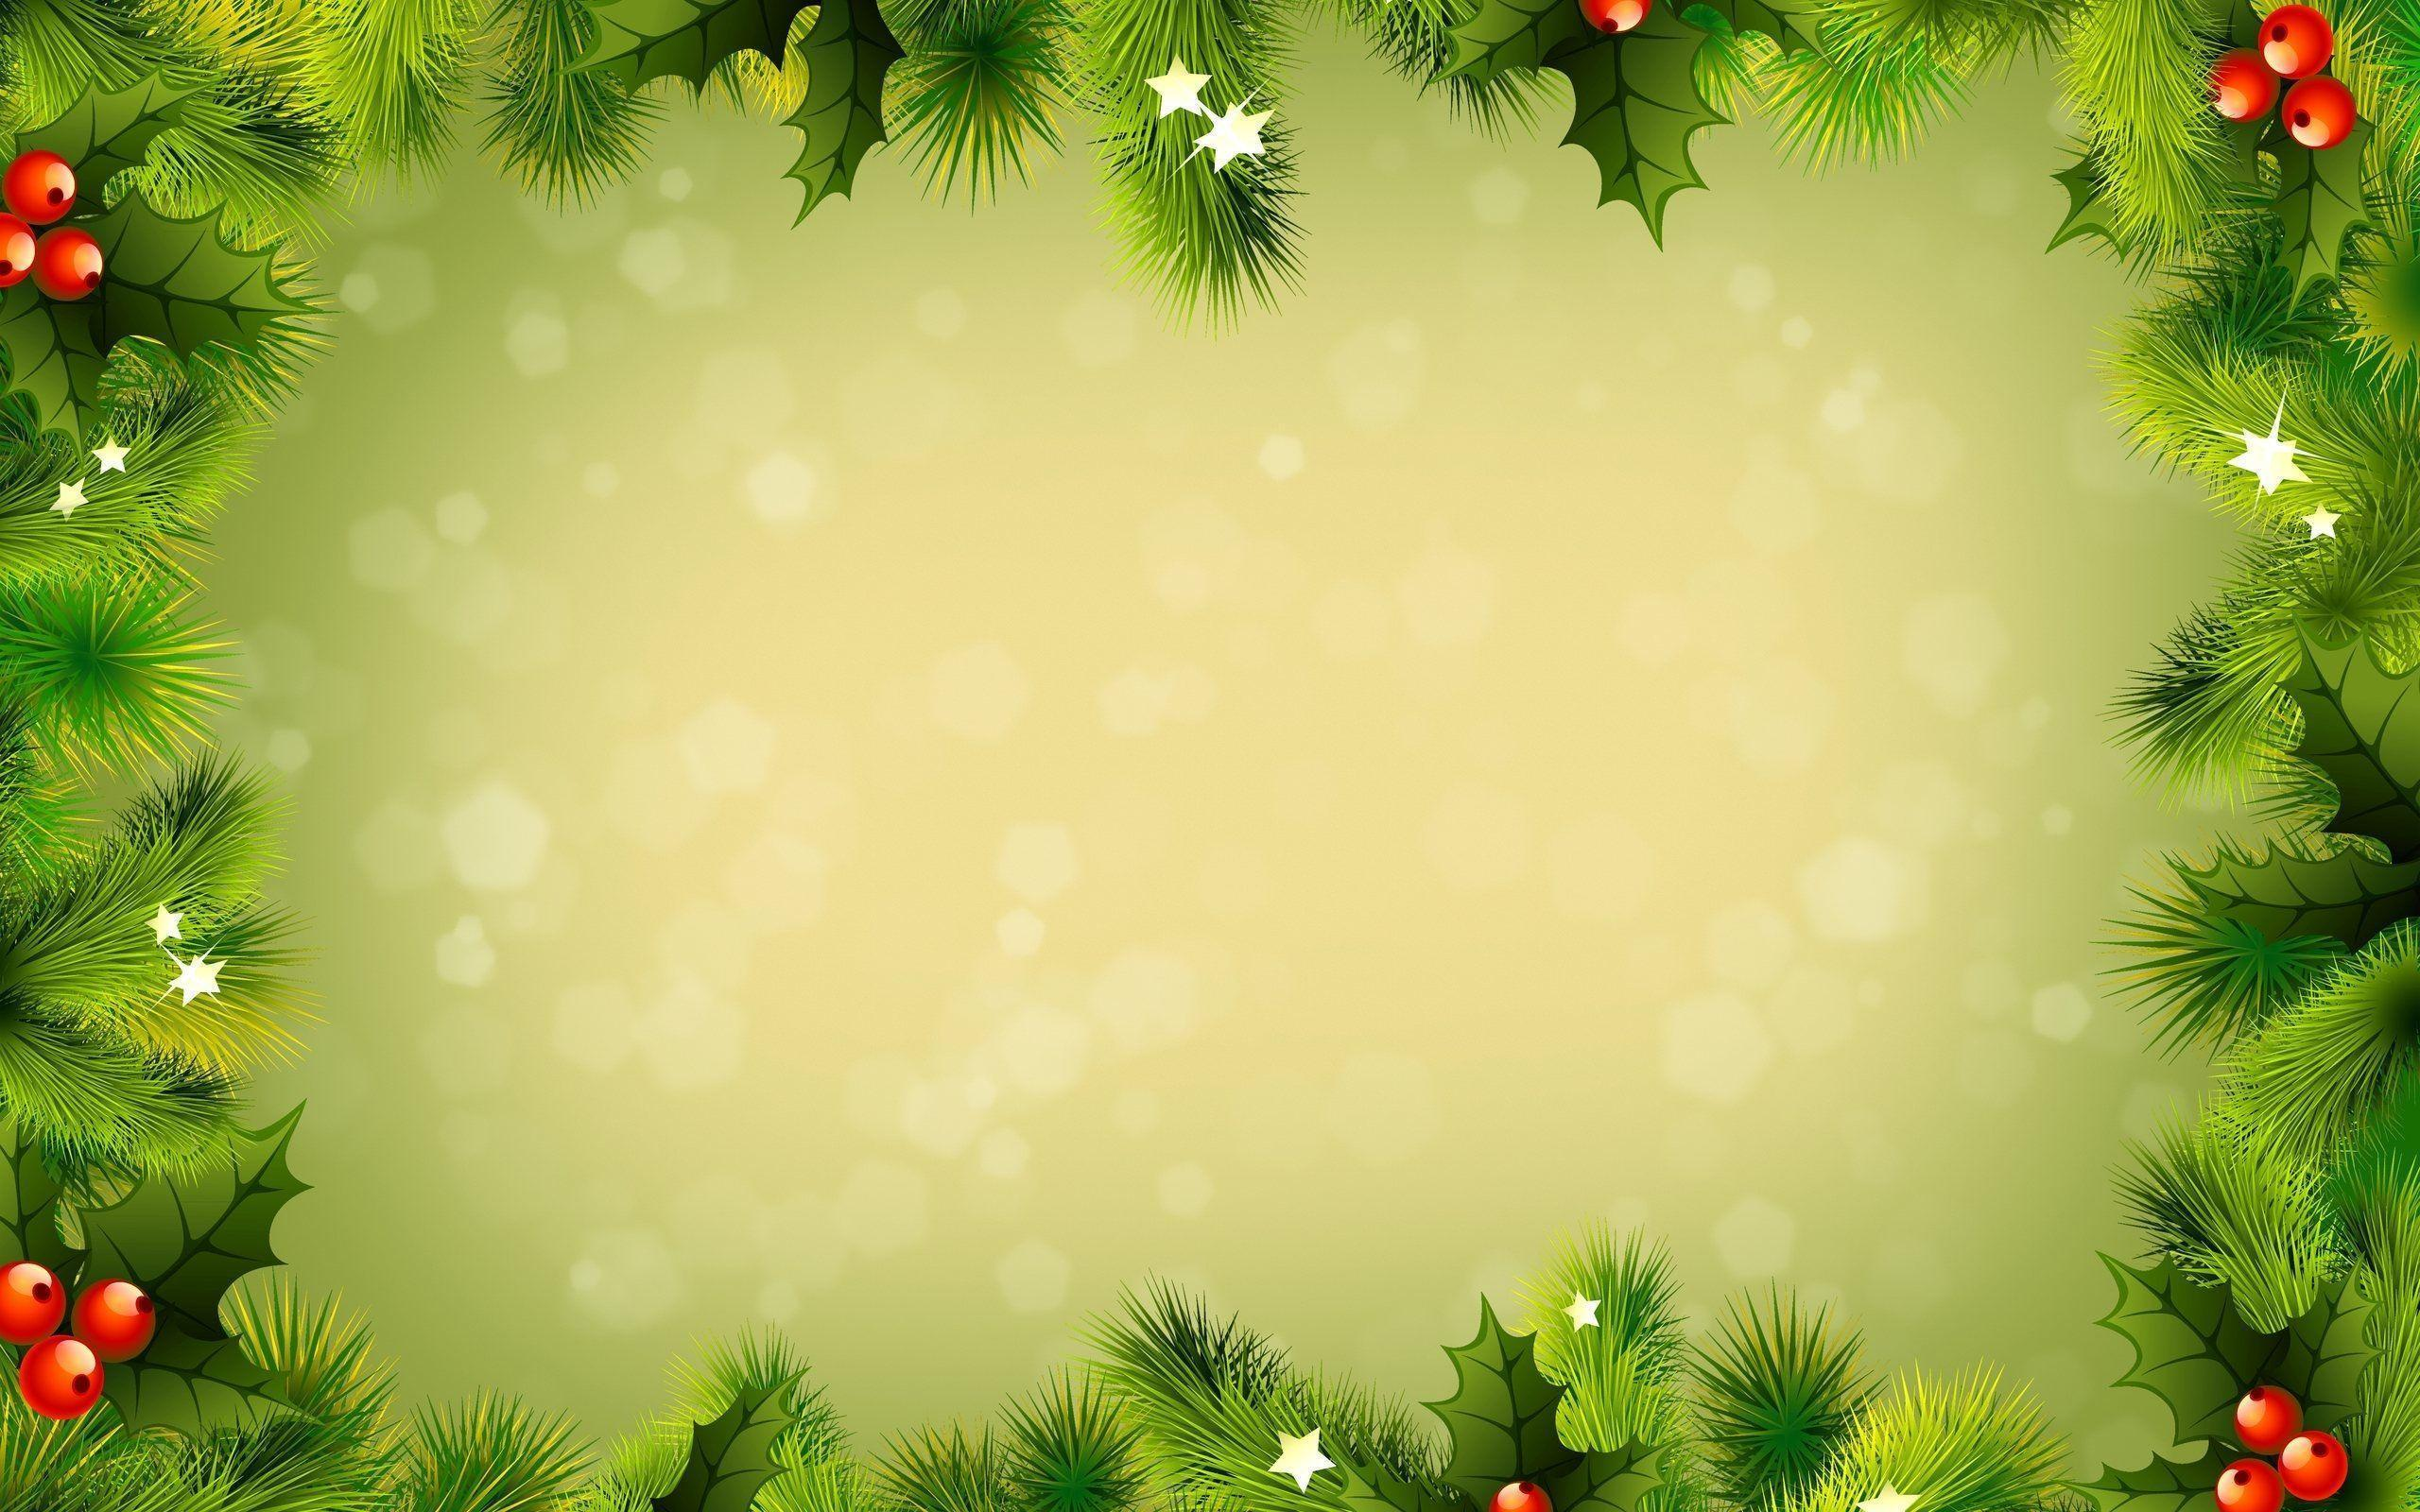 Christmas Backgrounds WallpaperAik Friends Family